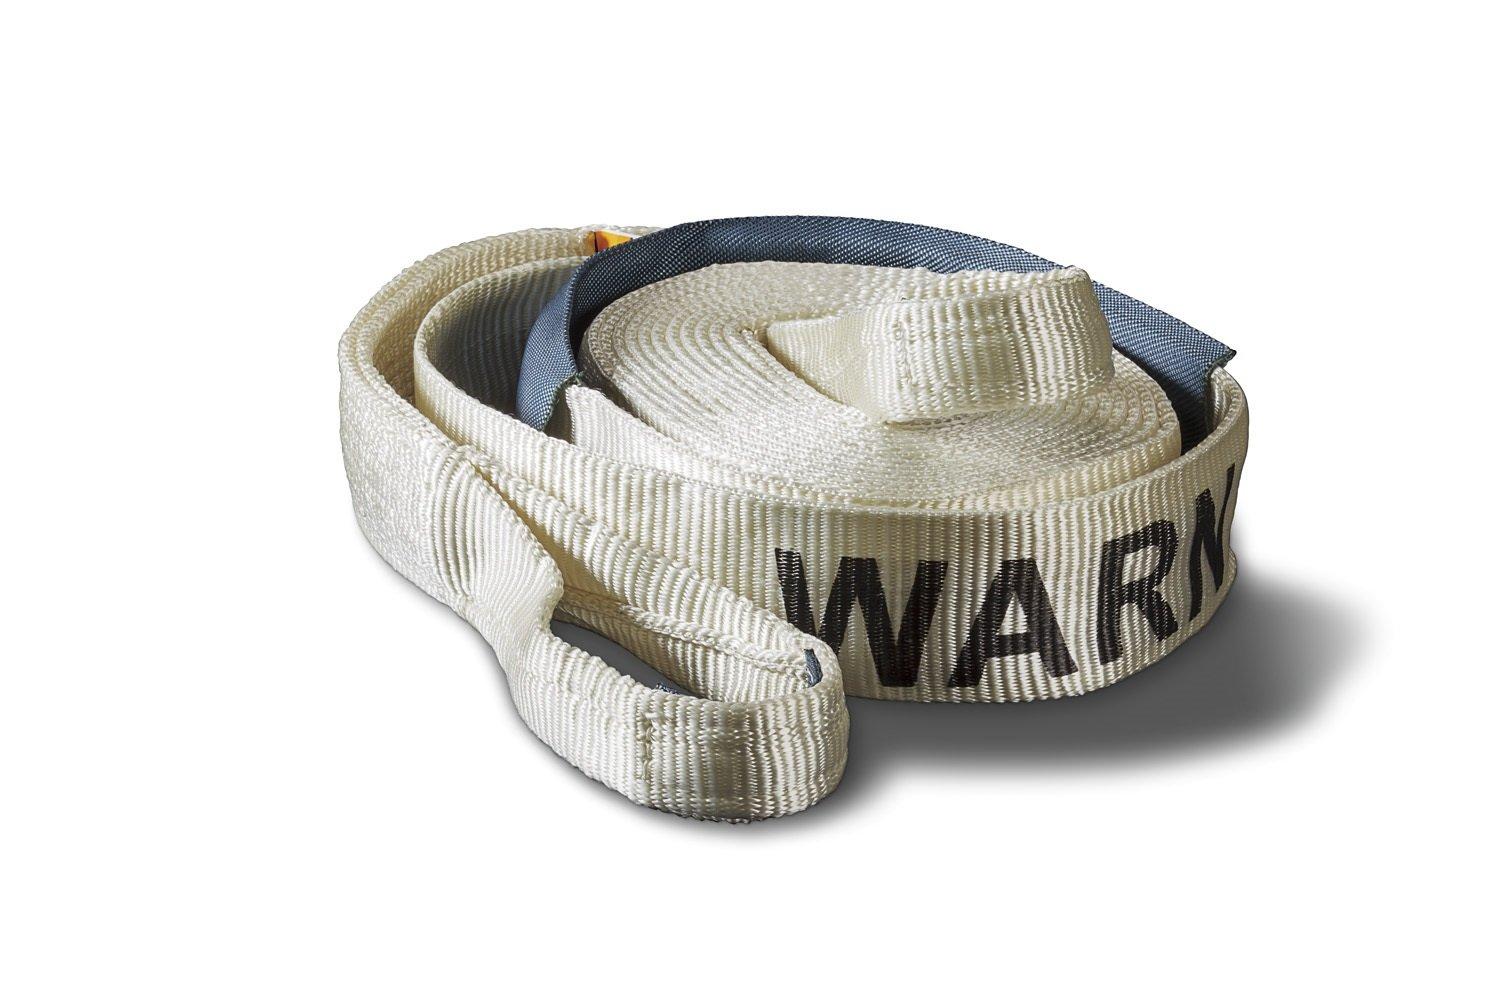 Warn (88924 3'' x 30' Premium Recovery Strap by Warn